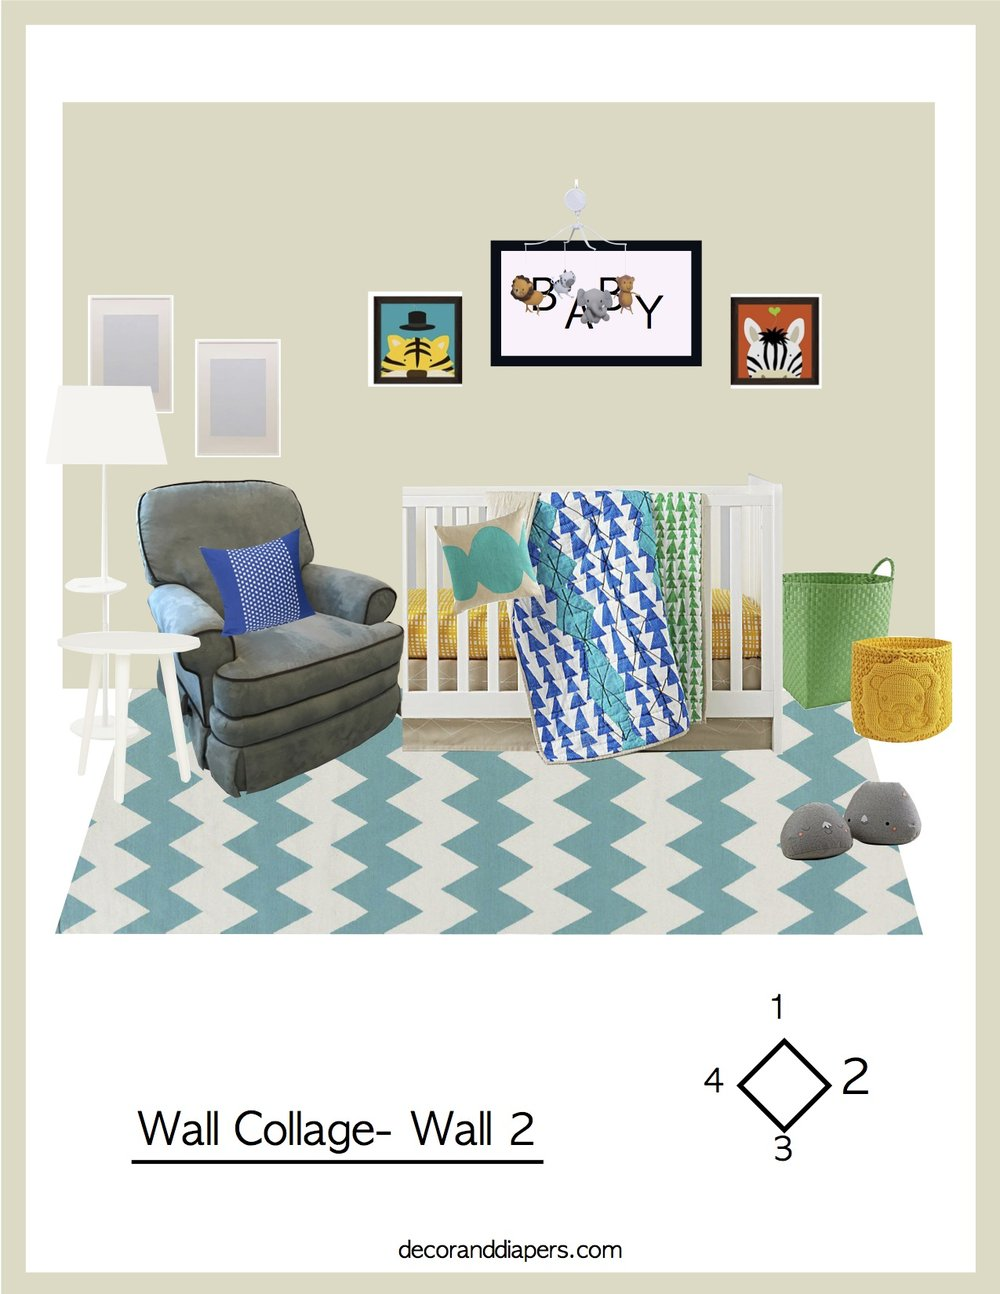 Wall Collage - A colorful visualization of the feature wall in your nursery